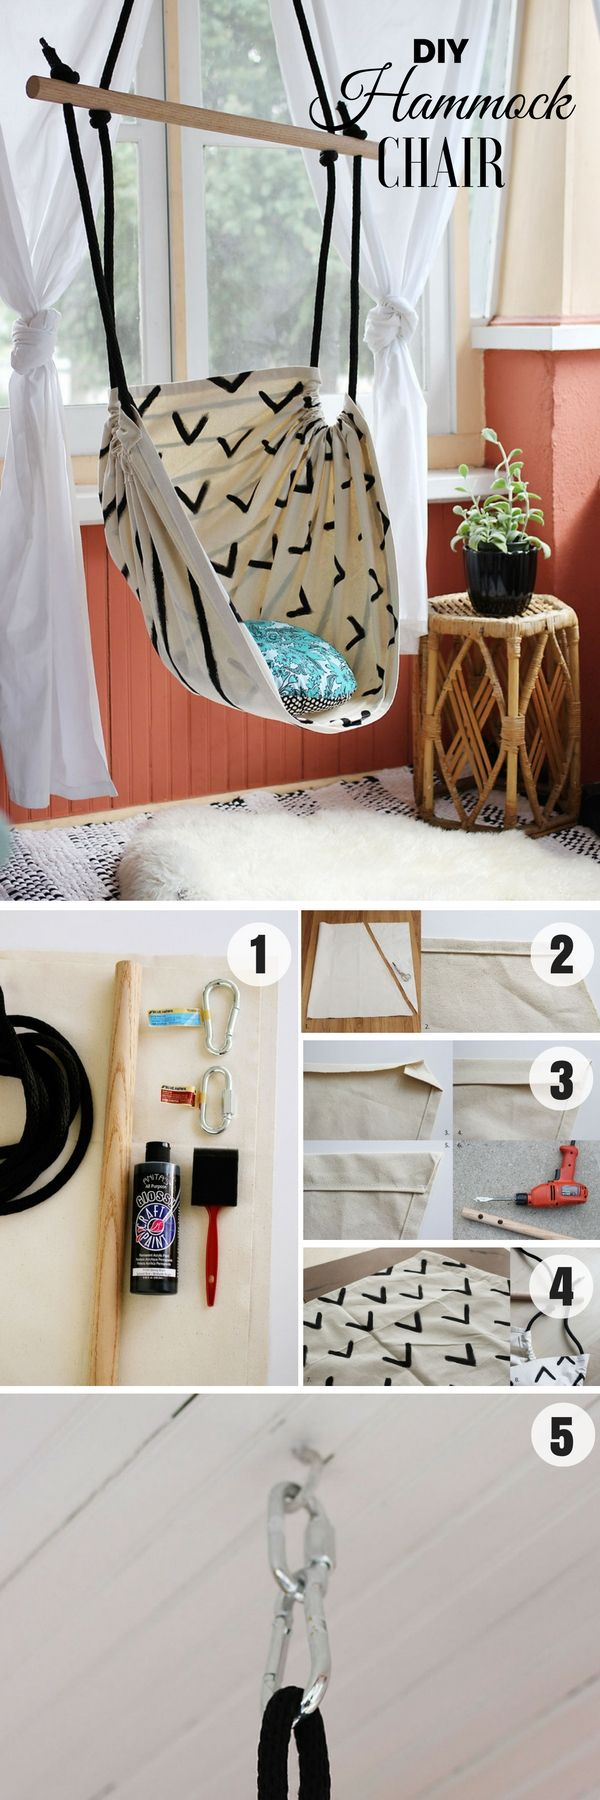 Bedroom Decor Homemade best 25+ diy room ideas ideas only on pinterest | diy room decor